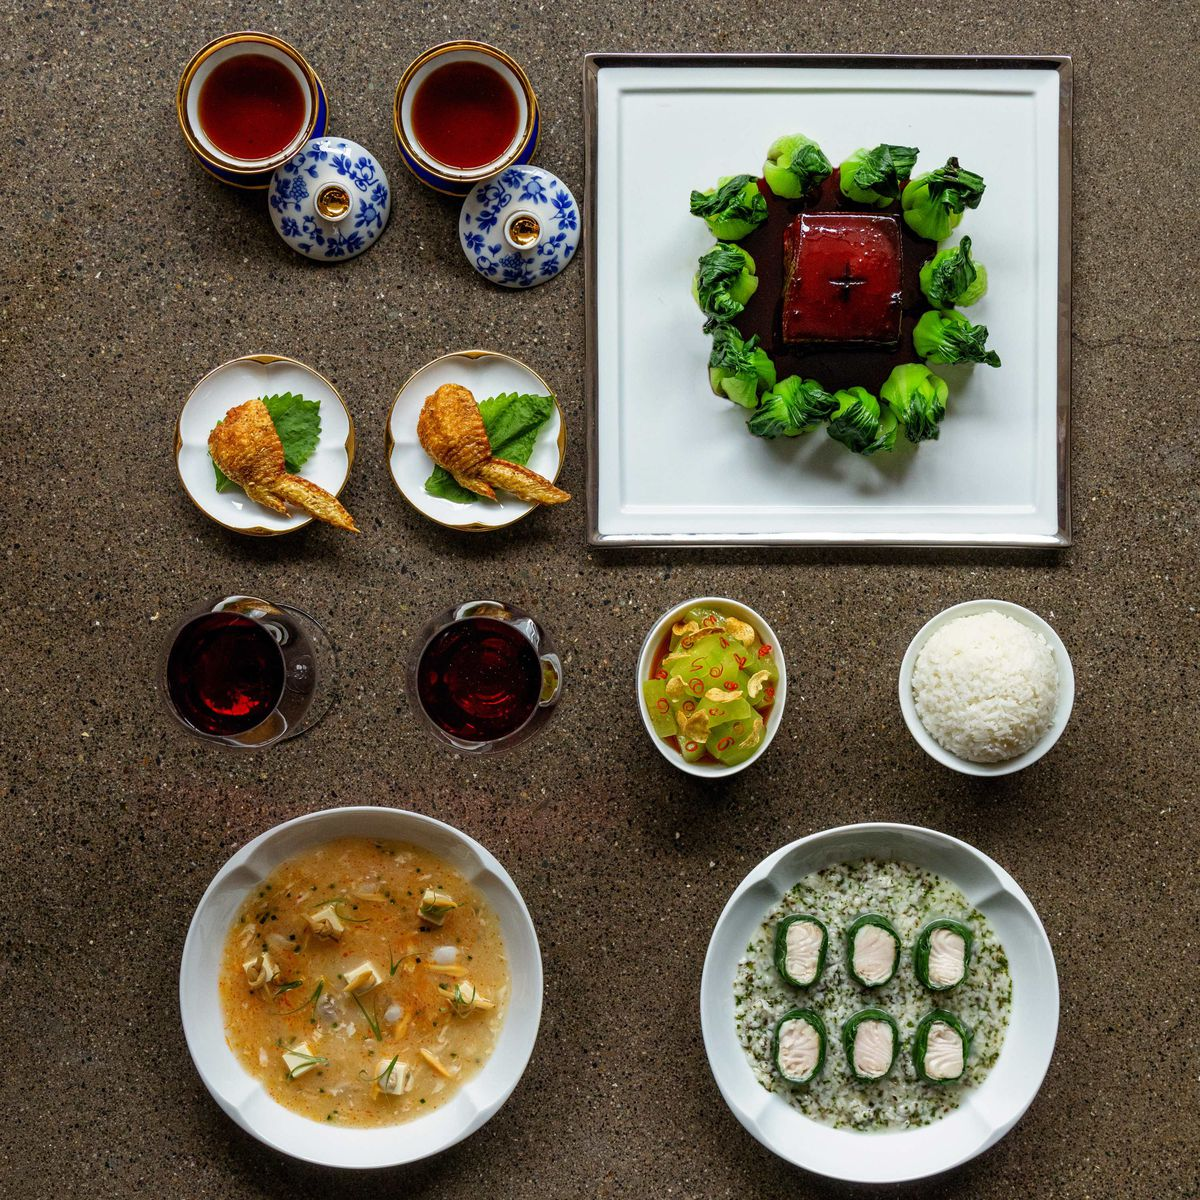 Eight Tables' Lunar New Year dishes arranged prettily on the table: stuffed chicken wings, DongPo pork surrounded by steamed bok choy, and more